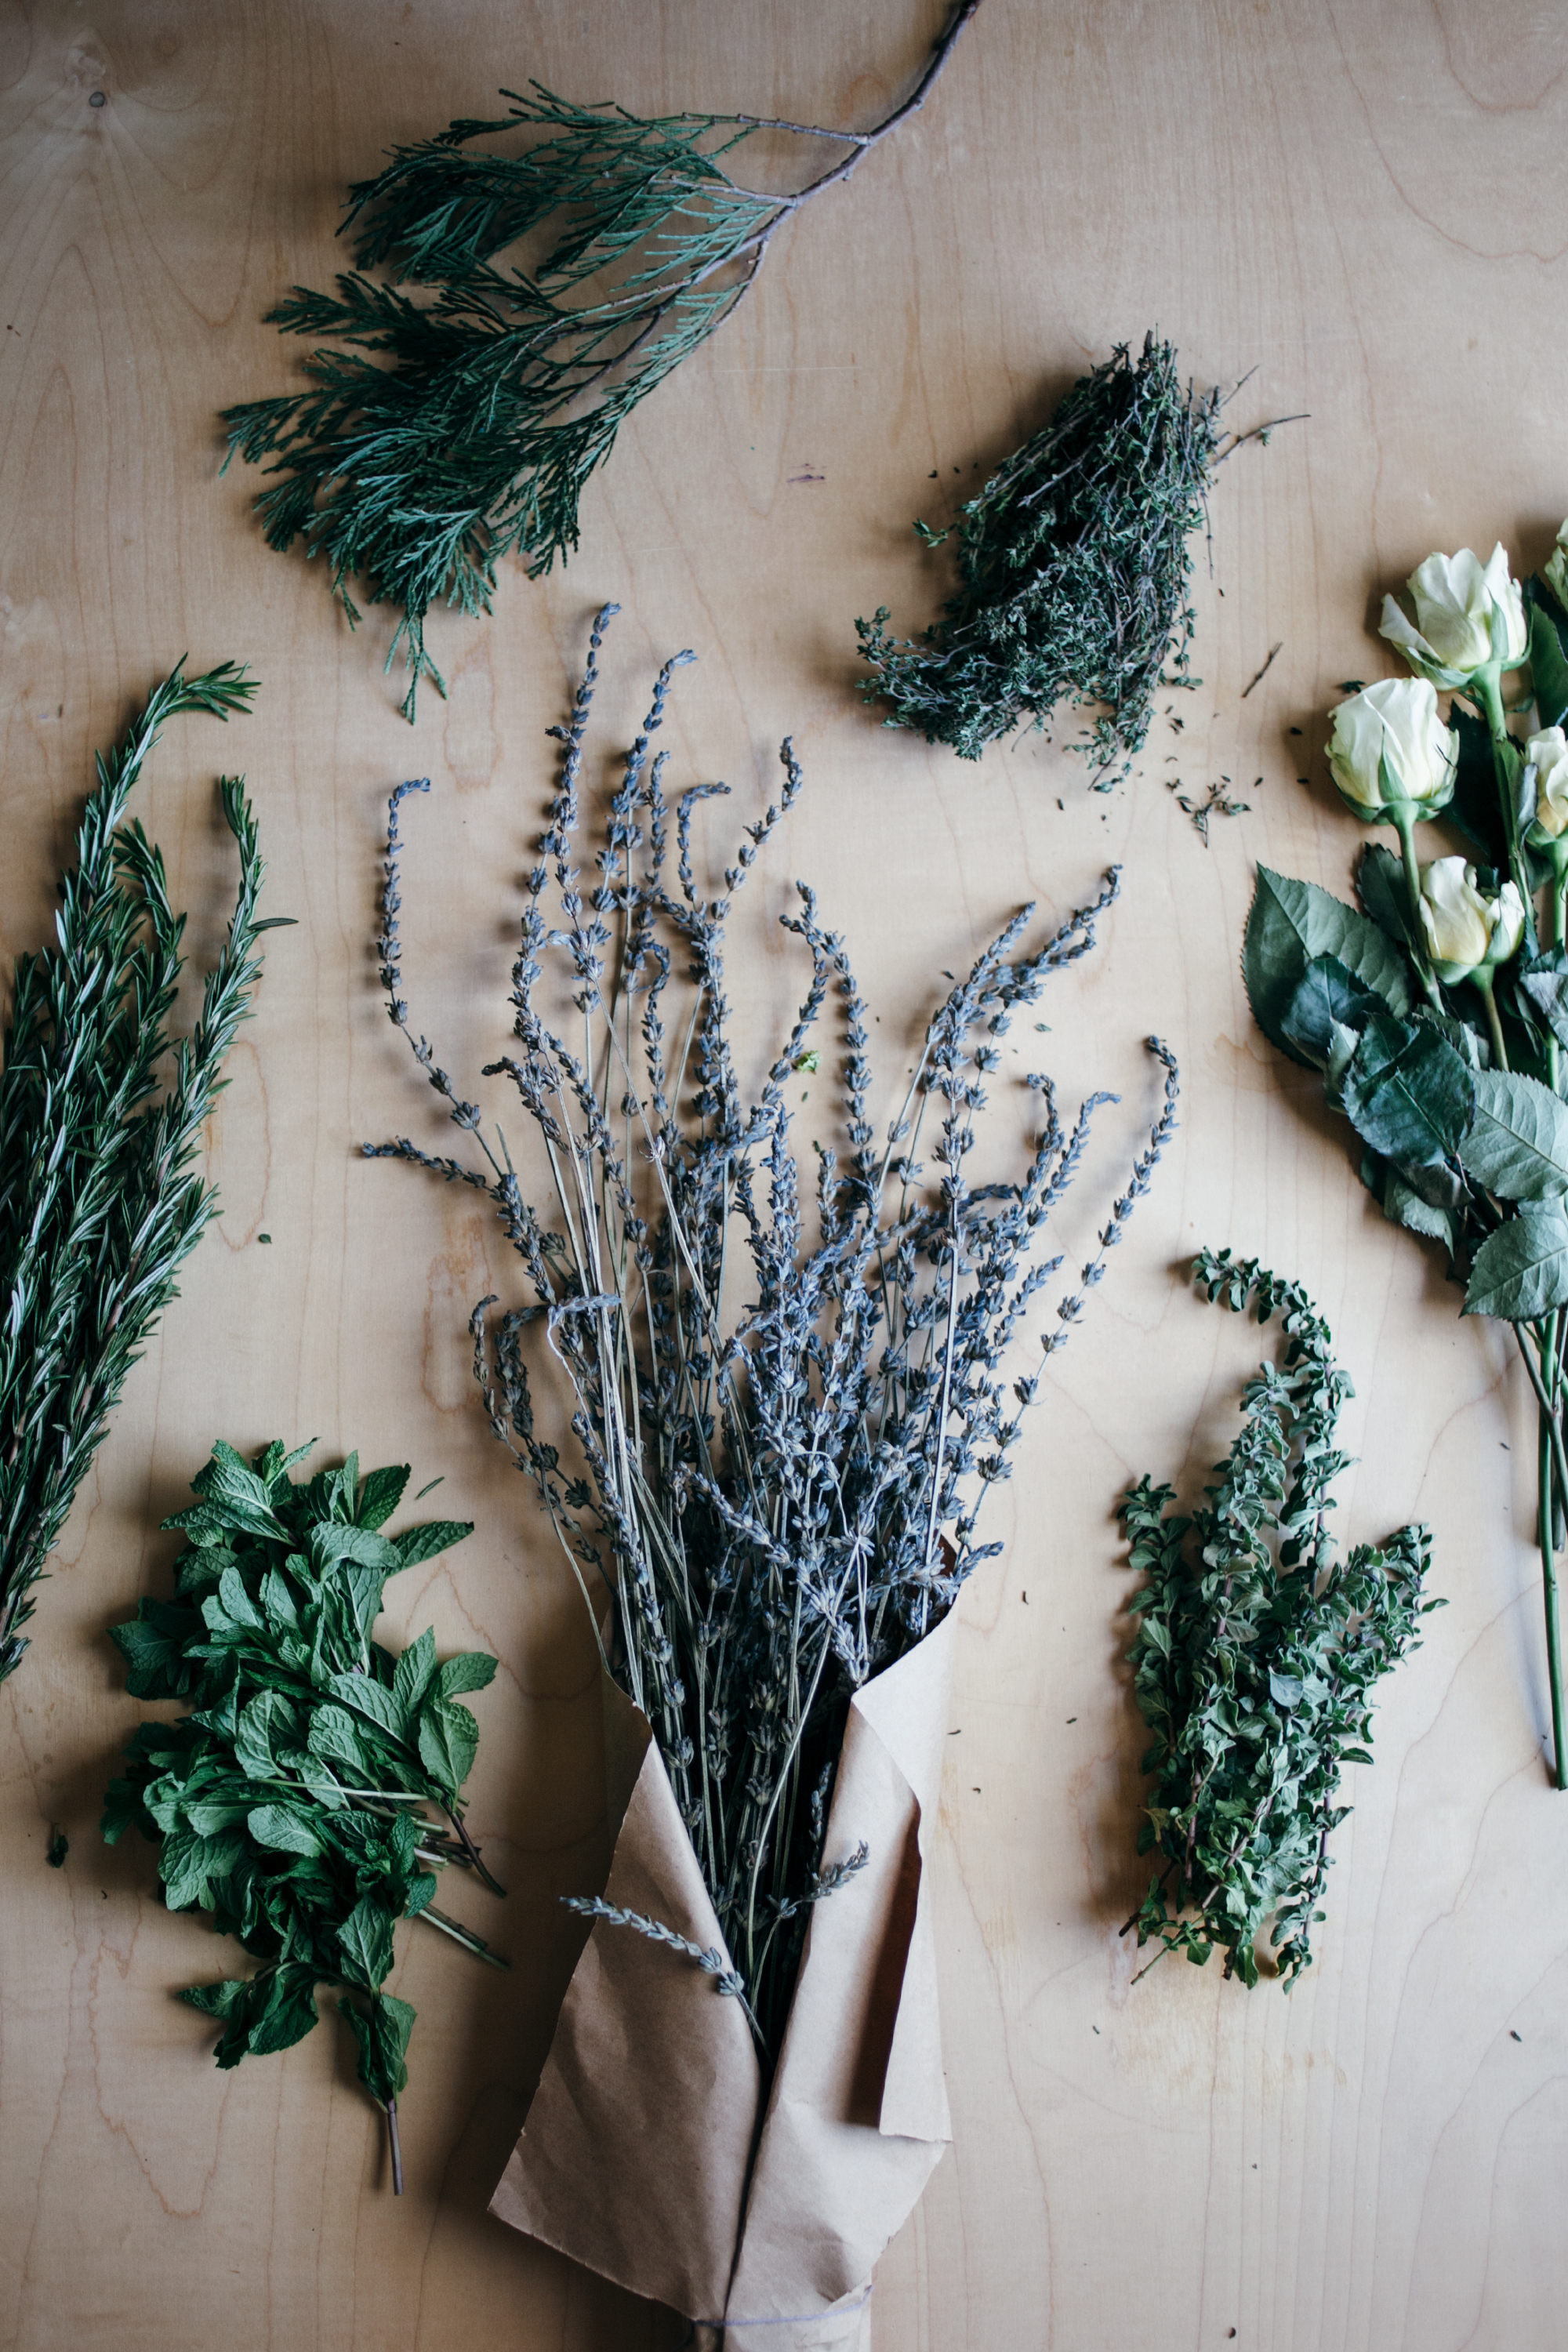 DIY Smudge Sticks to Cleanse Your Home   Apartment Therapy